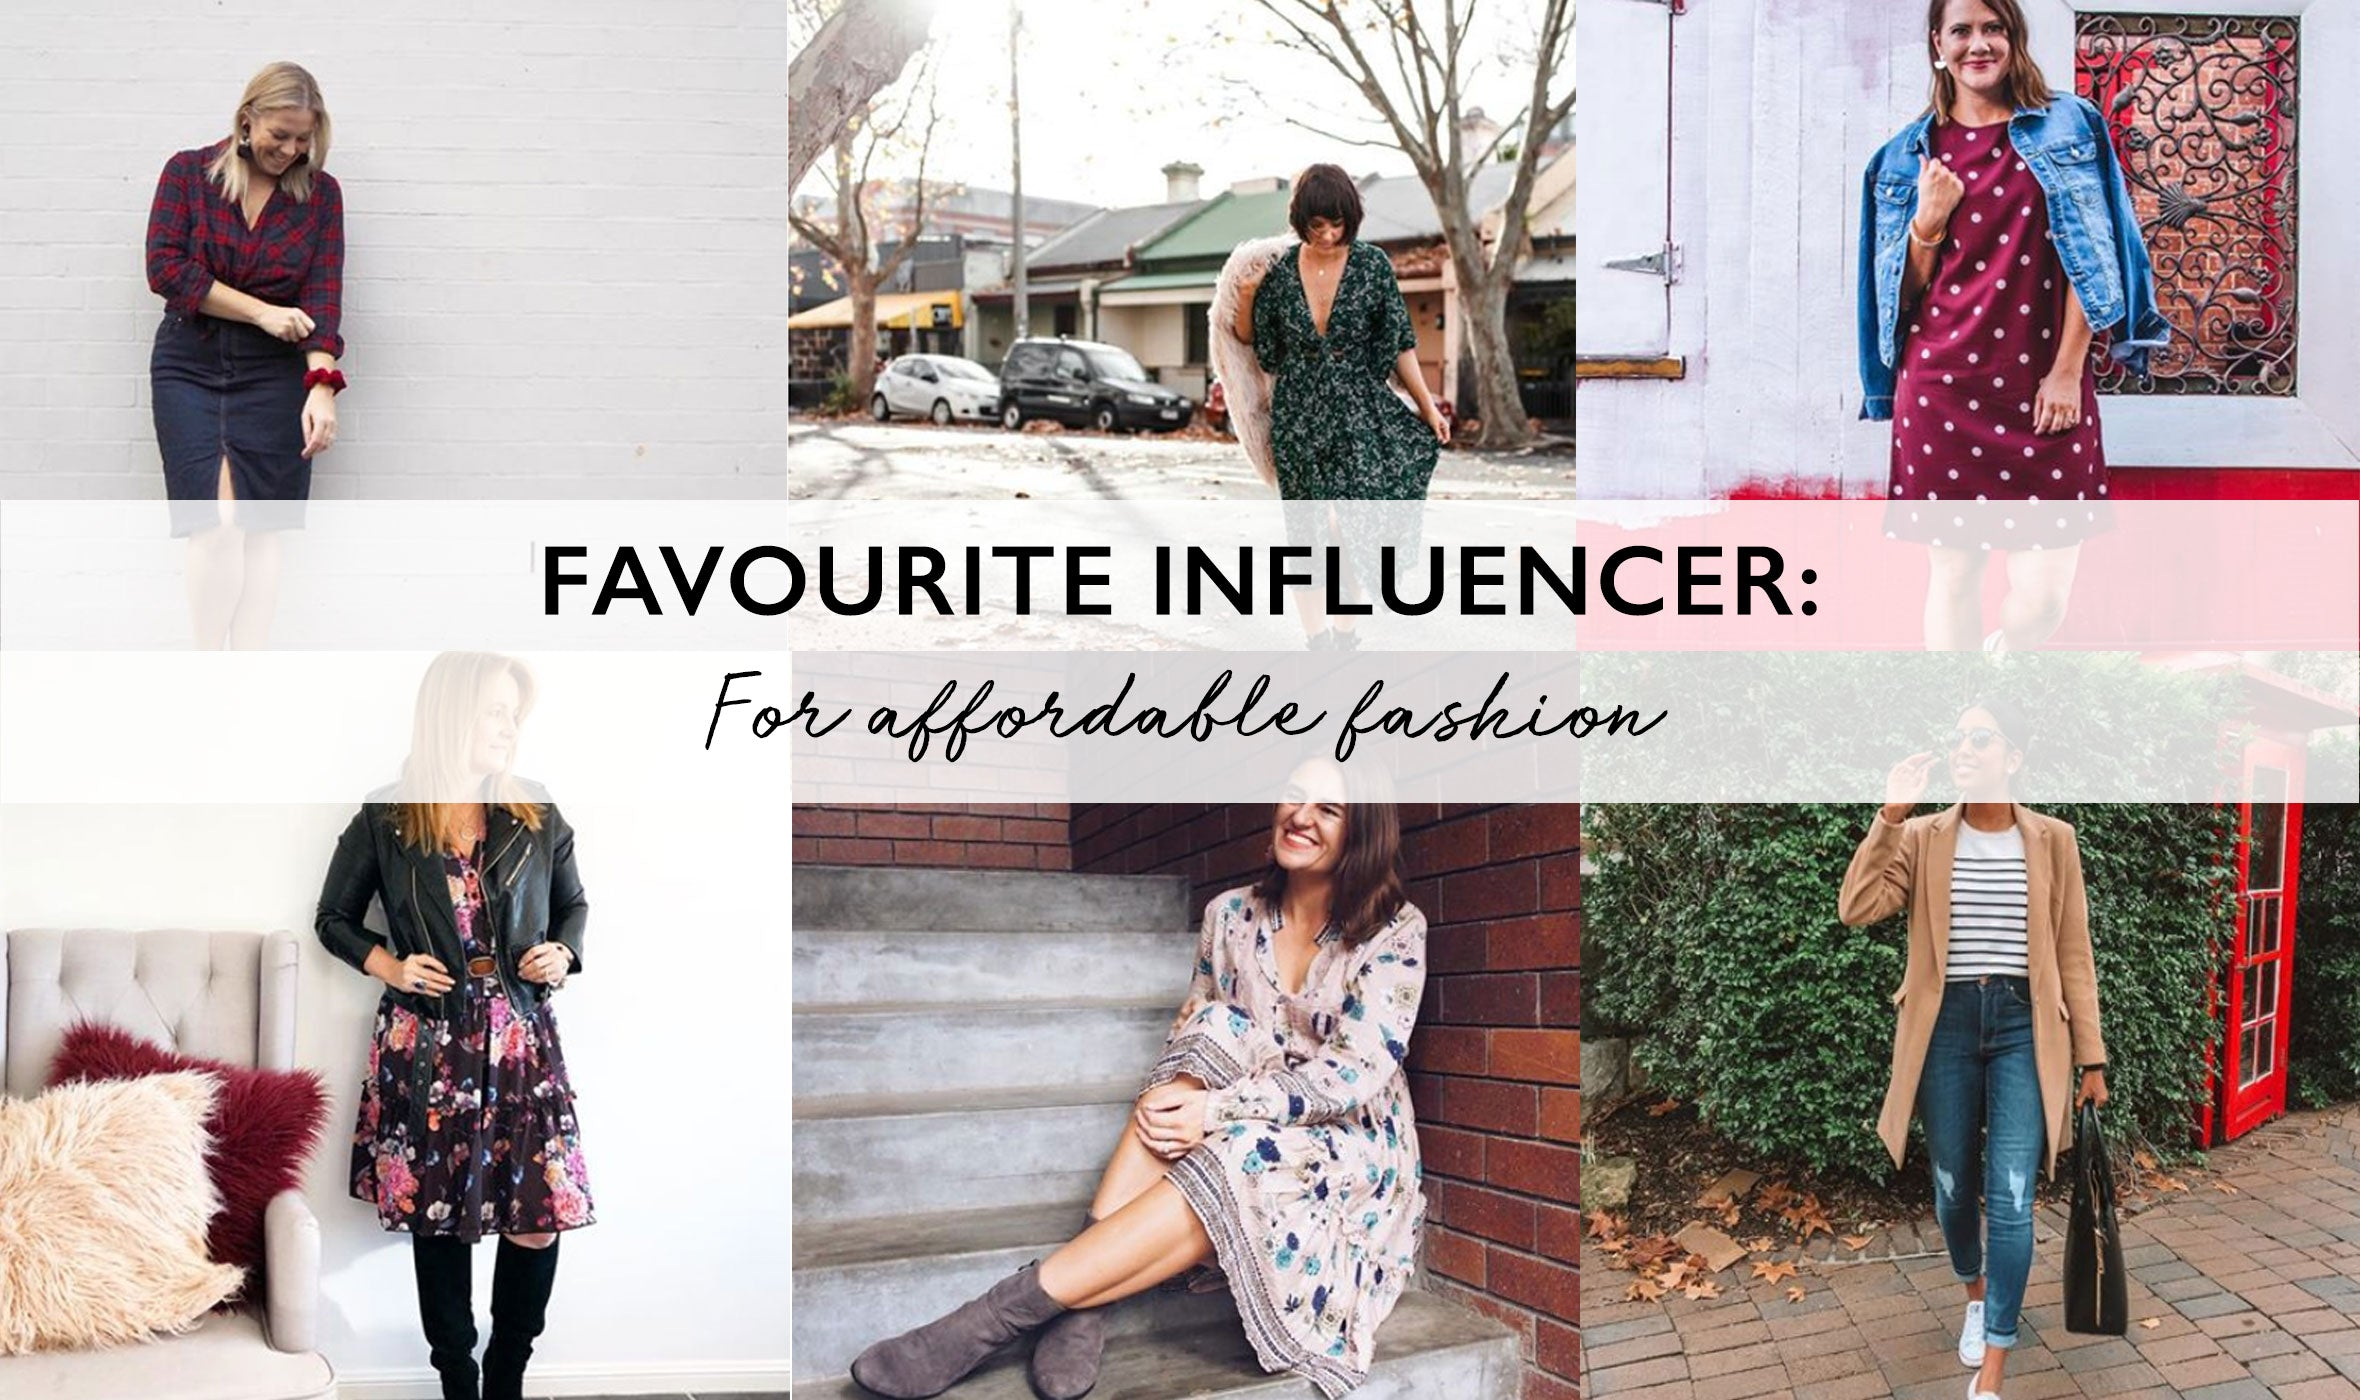 6 Fashion Influencers You Should Be Following